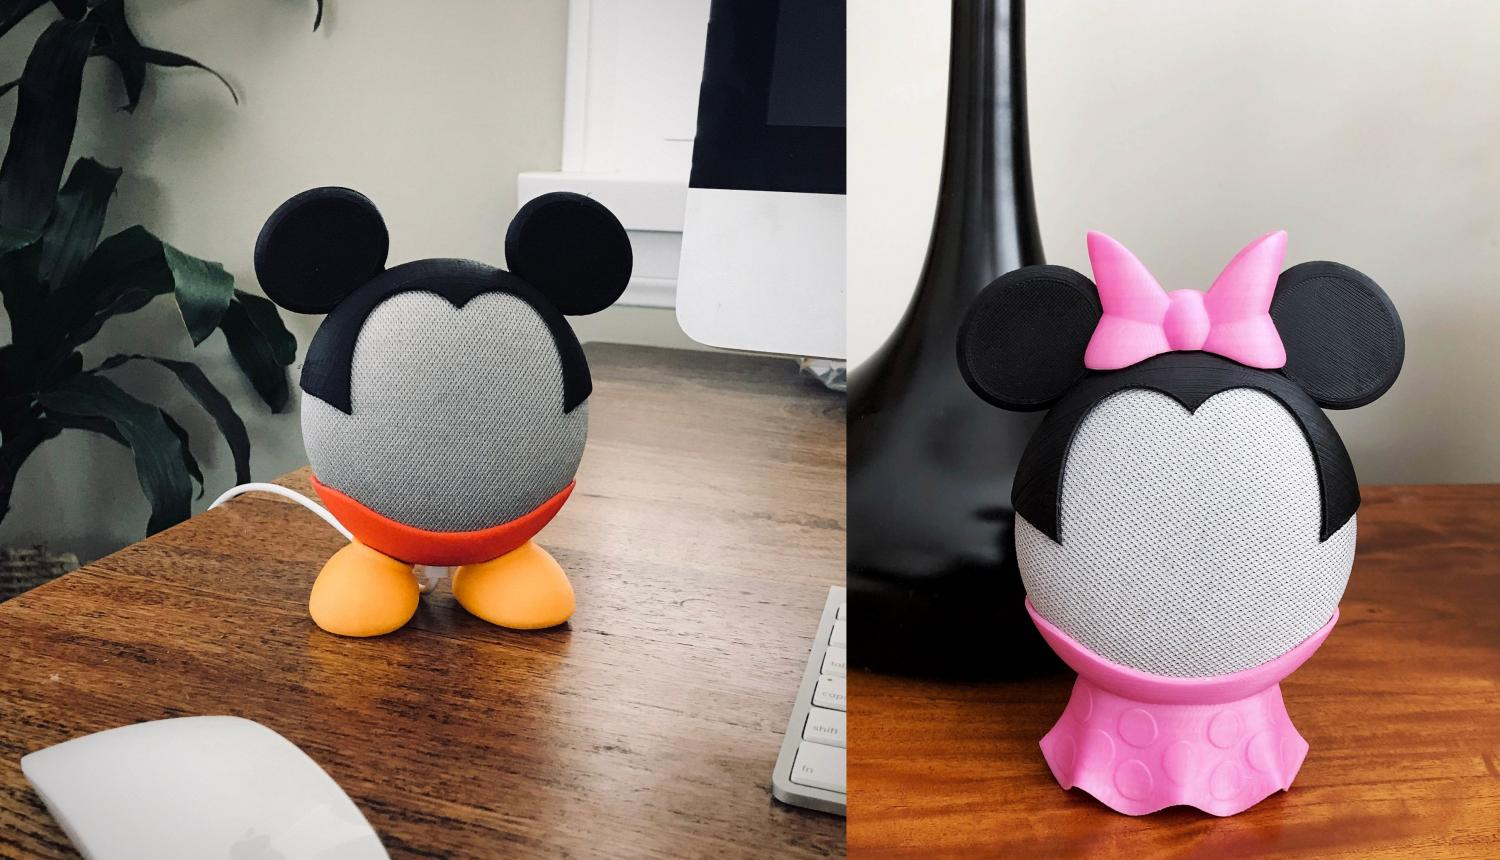 3D Printed Smart Speaker Holder Turns Your Google Nest Mini Into Mickey Or Minnie Mouse